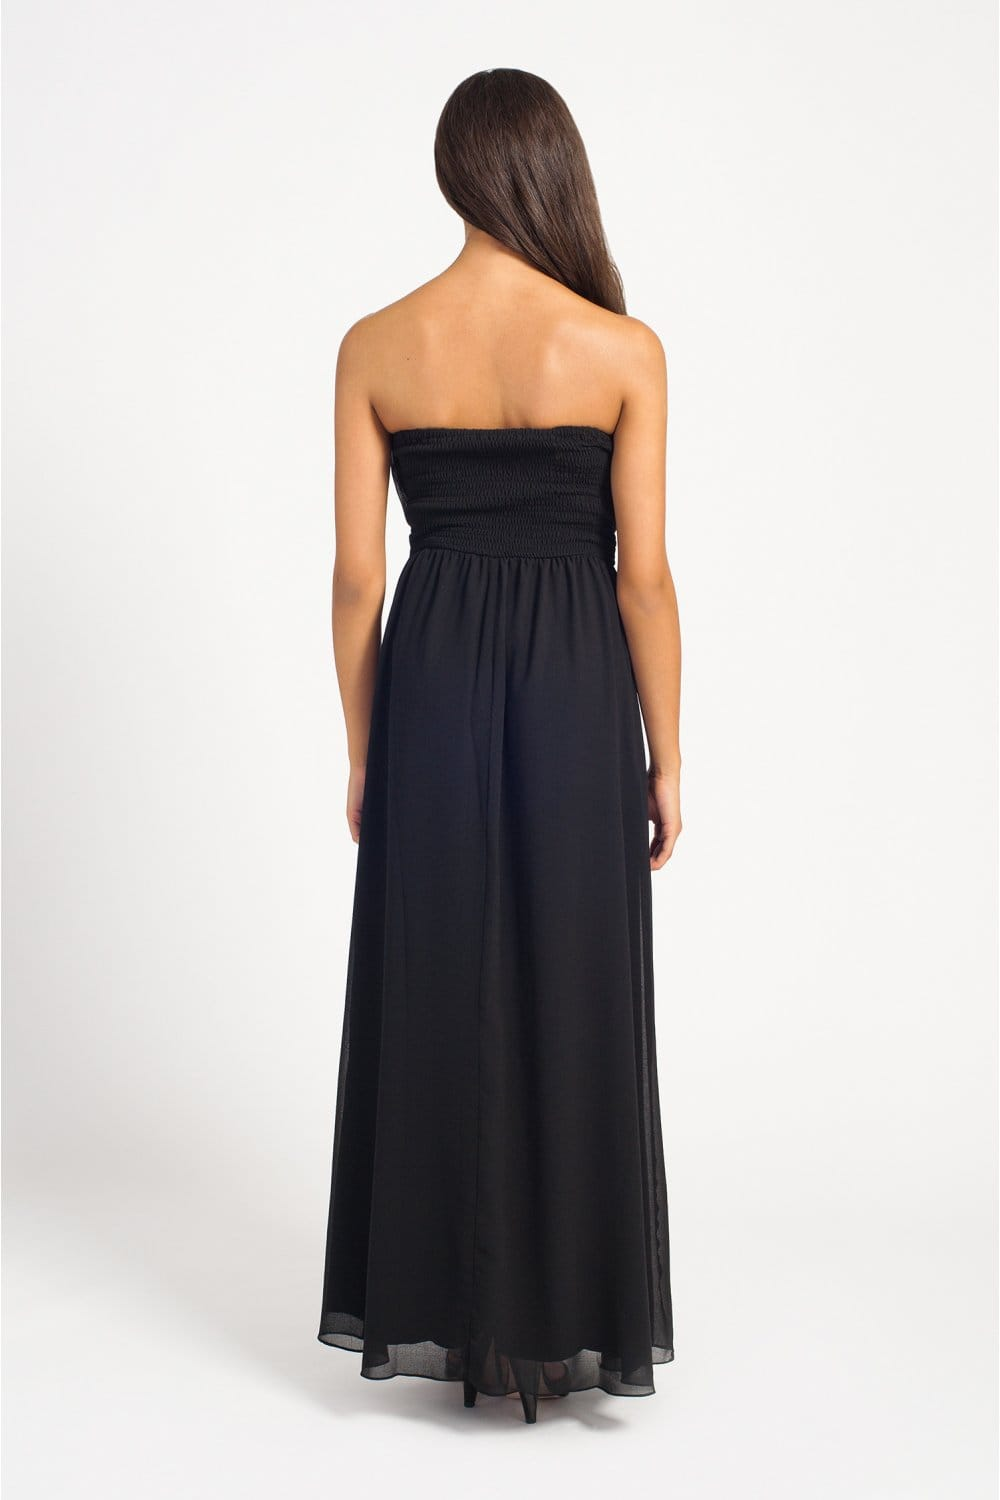 This gorgeous bandeau maxi dress made with black chiffon is a timeless classic! This style with a silver embroidered detail waist suits all shapes and sizes and is the perfect dress for all occasions!